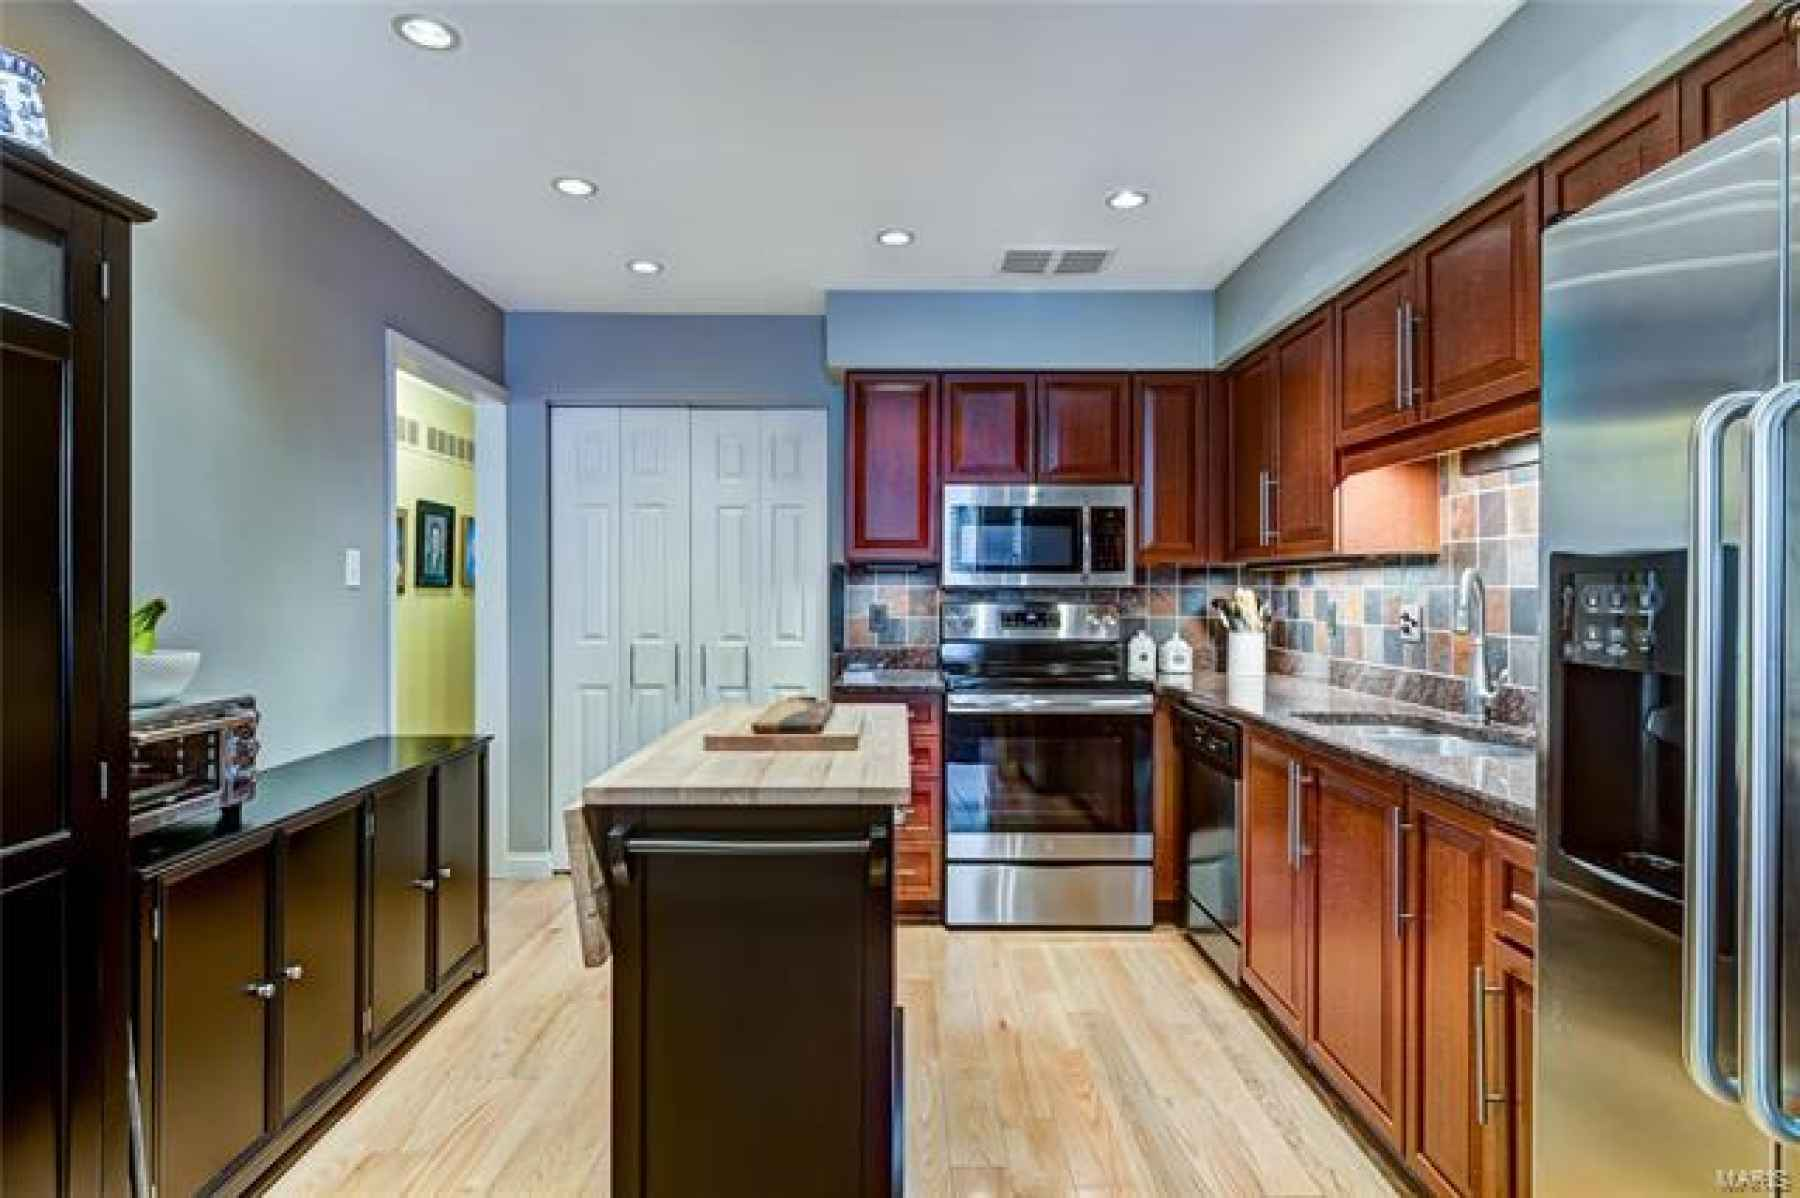 Stainless appliances (new range and microwave), wood flooring, granite creates the perfect kitchen space!